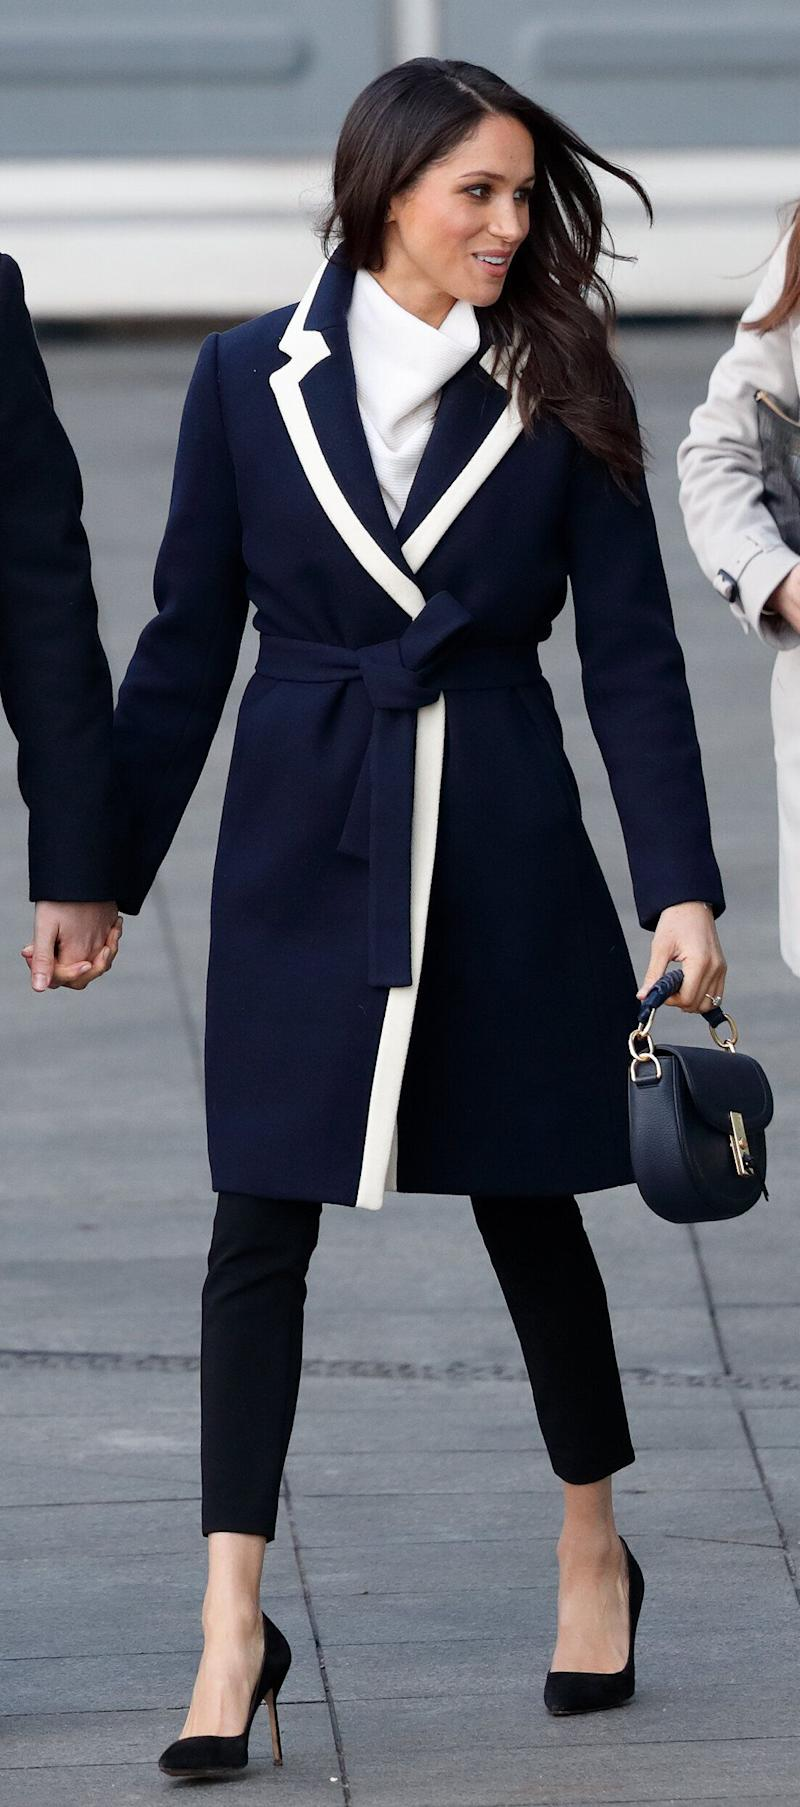 Yes, the coat is J. Crew, but don't even think about it: it's already sold out.